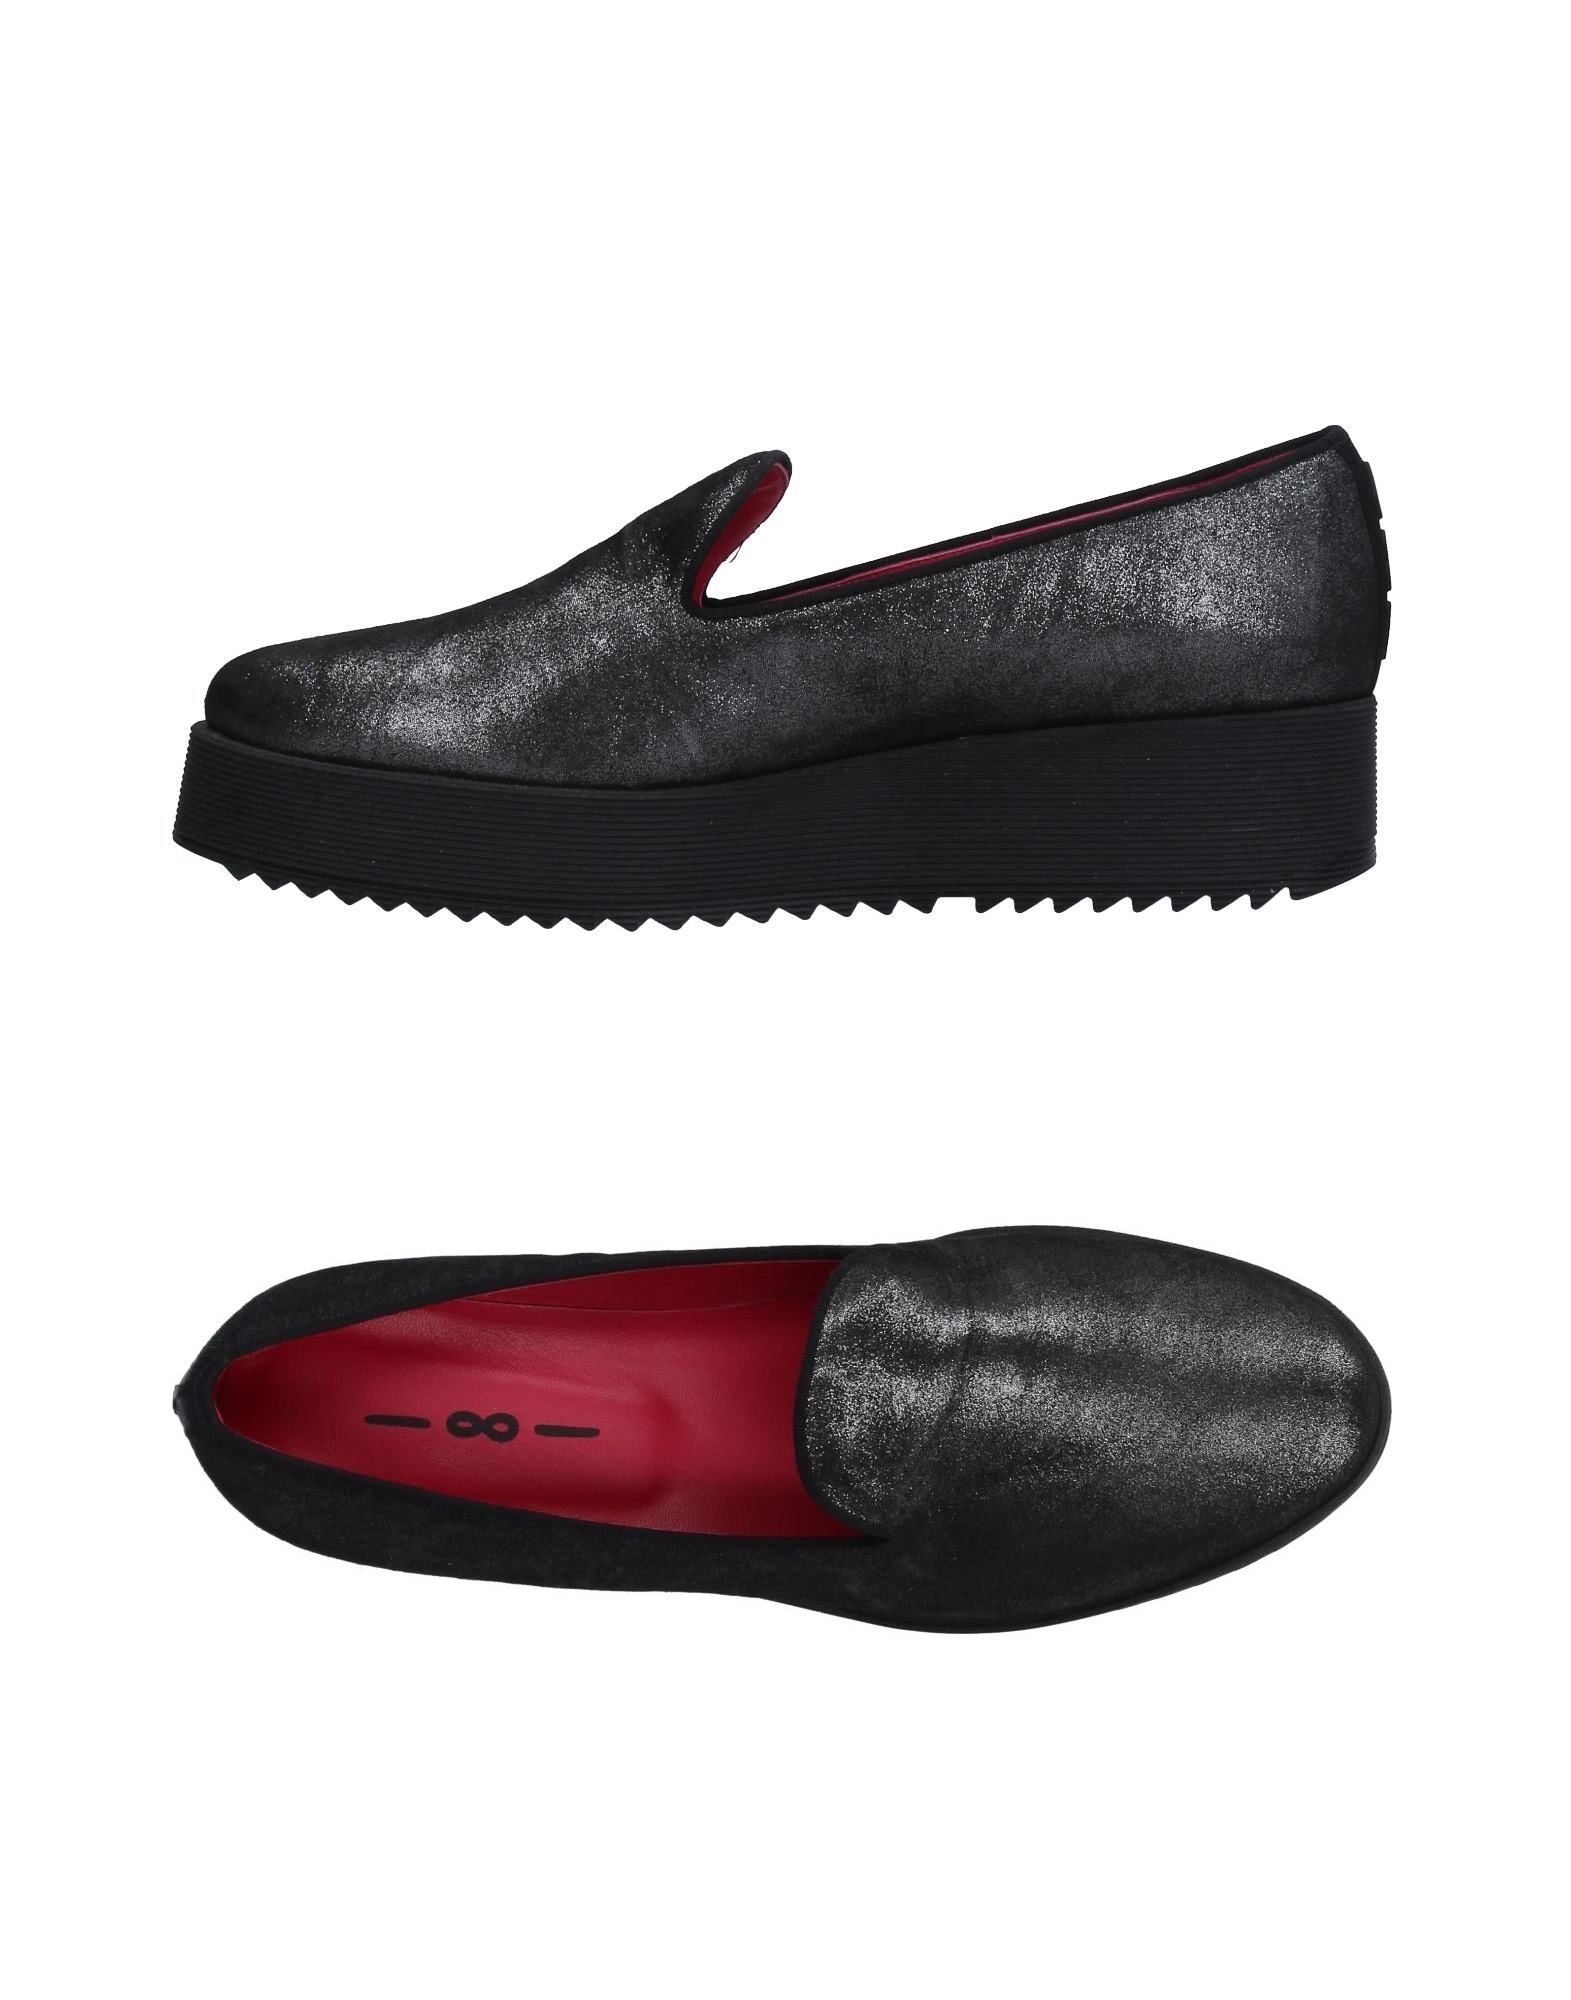 181 By Women Alberto Gozzi Loafers - Women By 181 By Alberto Gozzi Loafers online on  Australia - 11248389AN cf4056